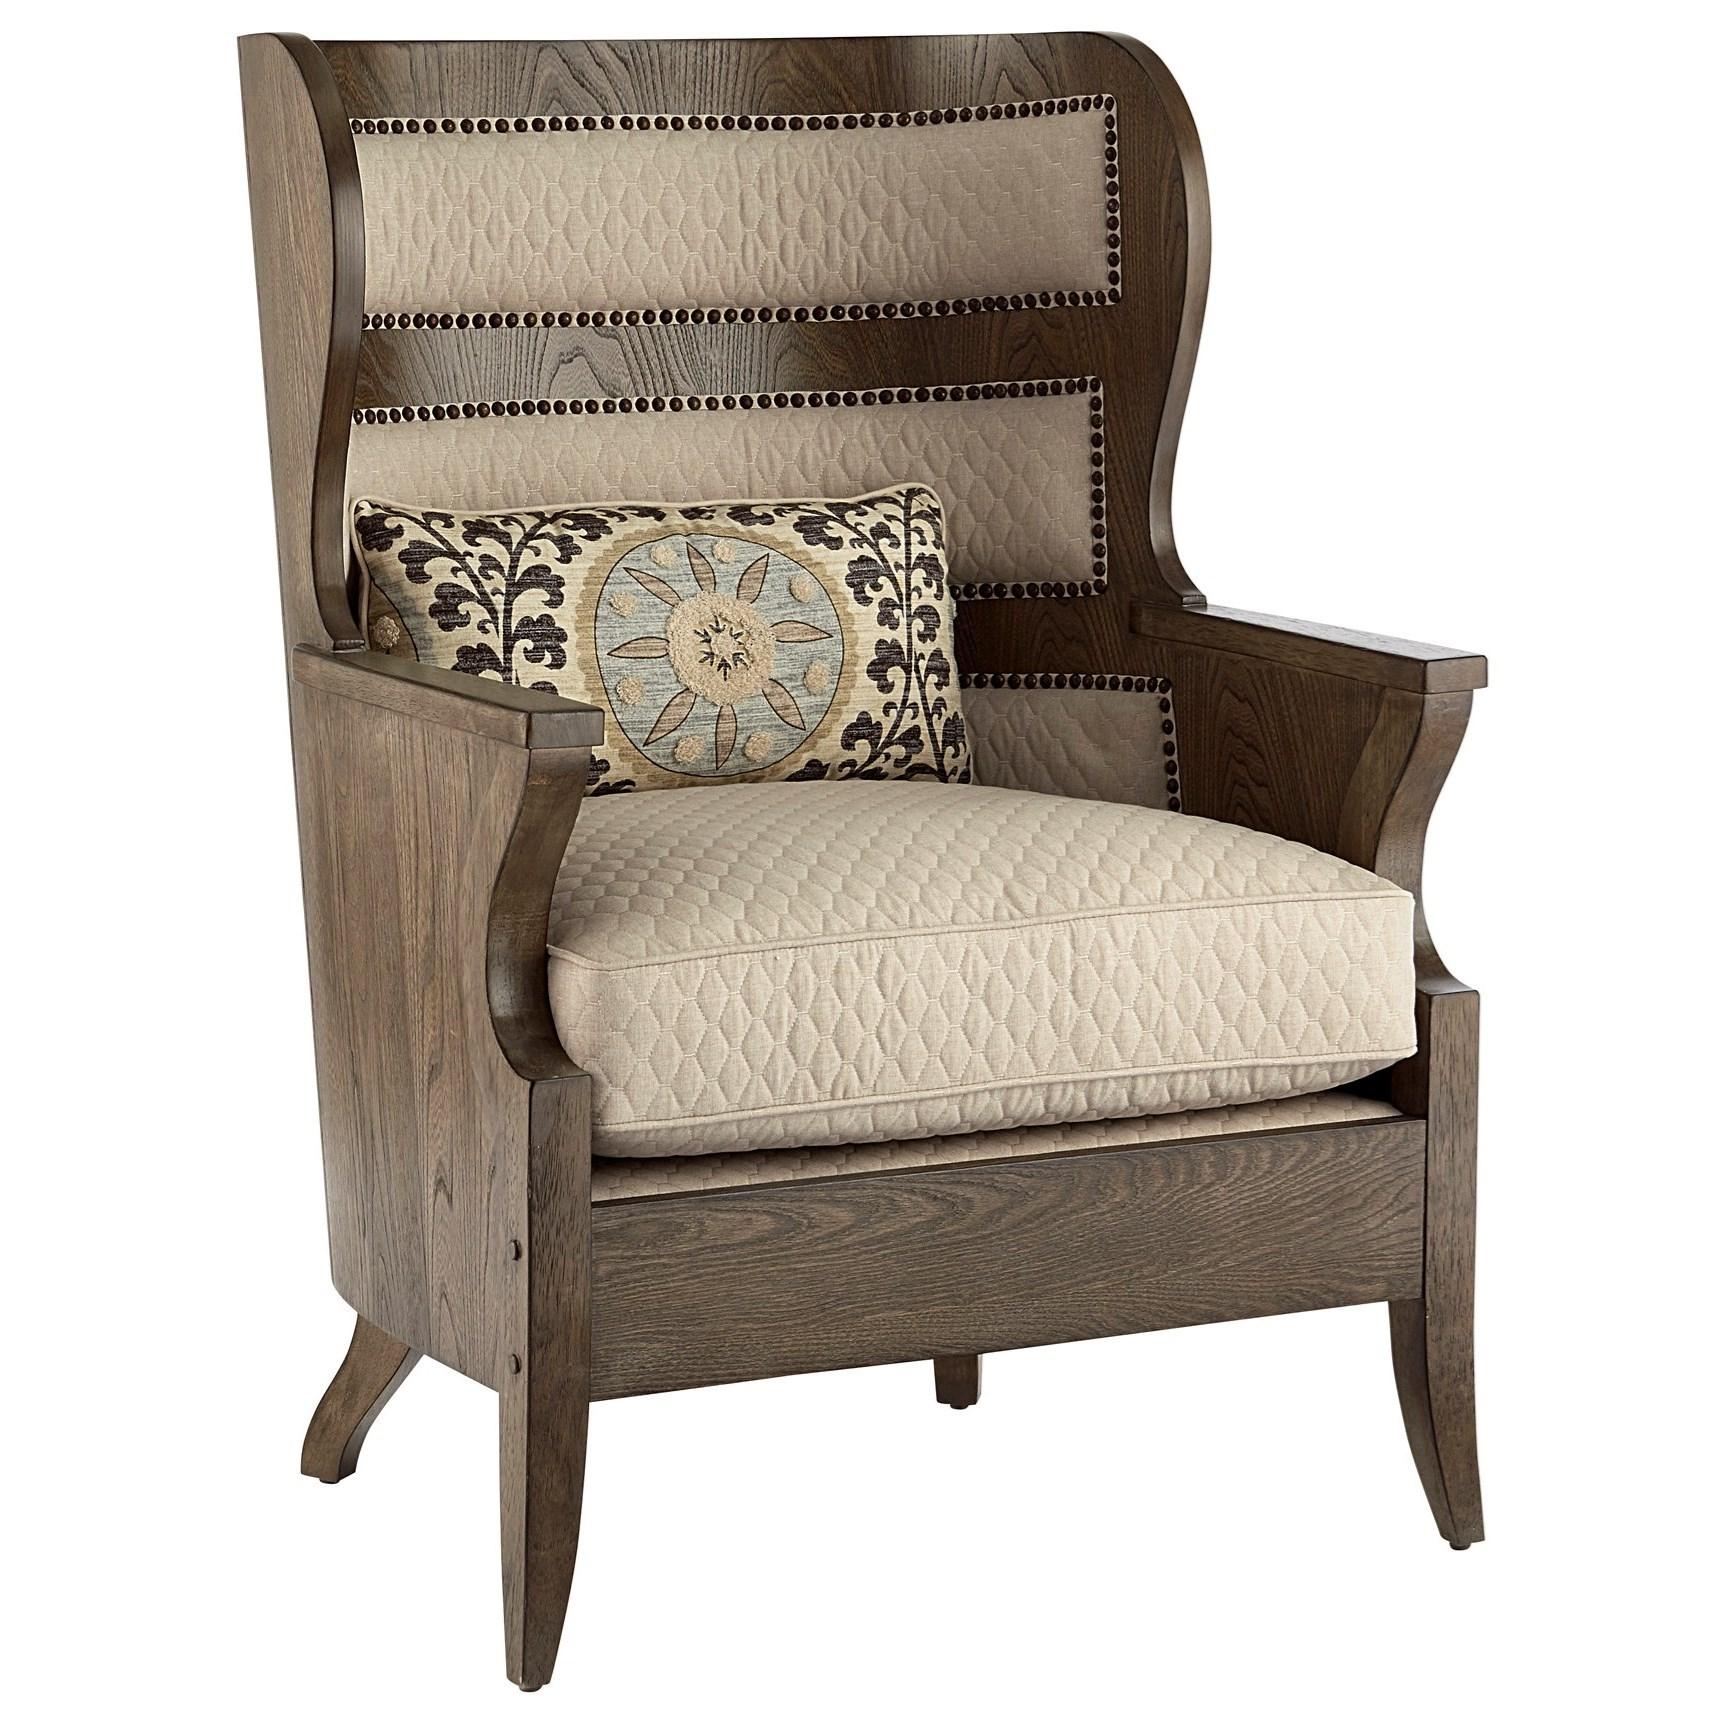 Vintage Salvage Upholstery Exposed Wood Wing Chair by Klien Furniture at Sprintz Furniture